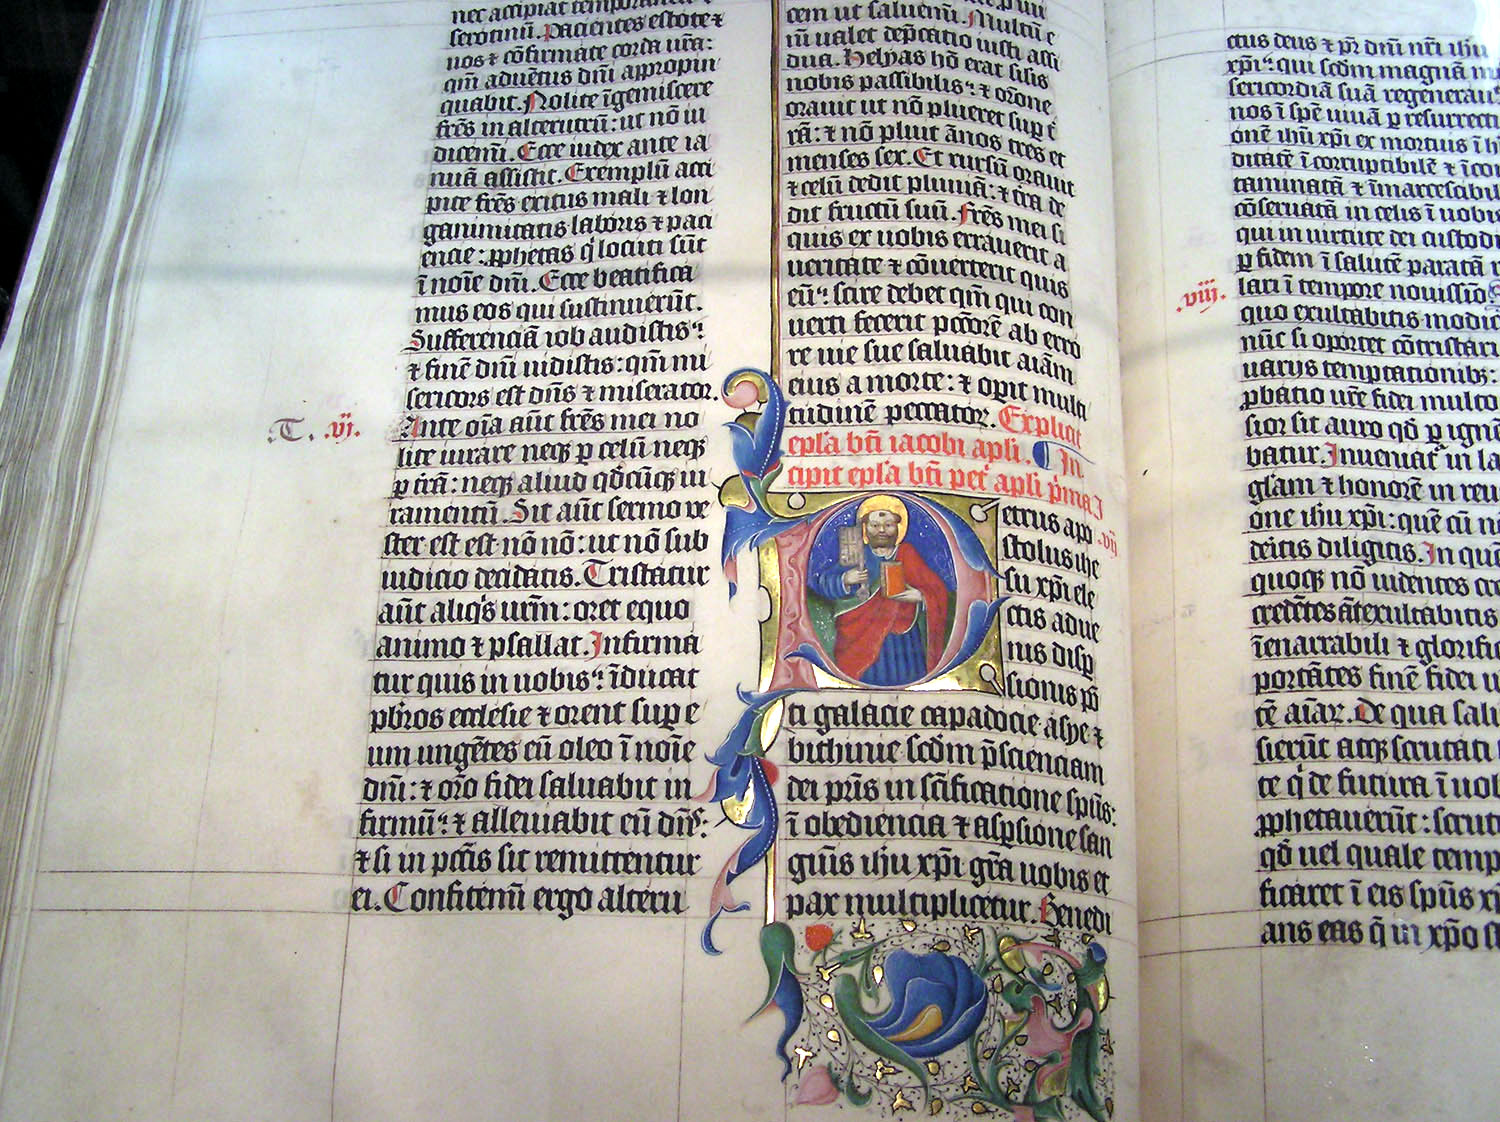 example of an illuminated text